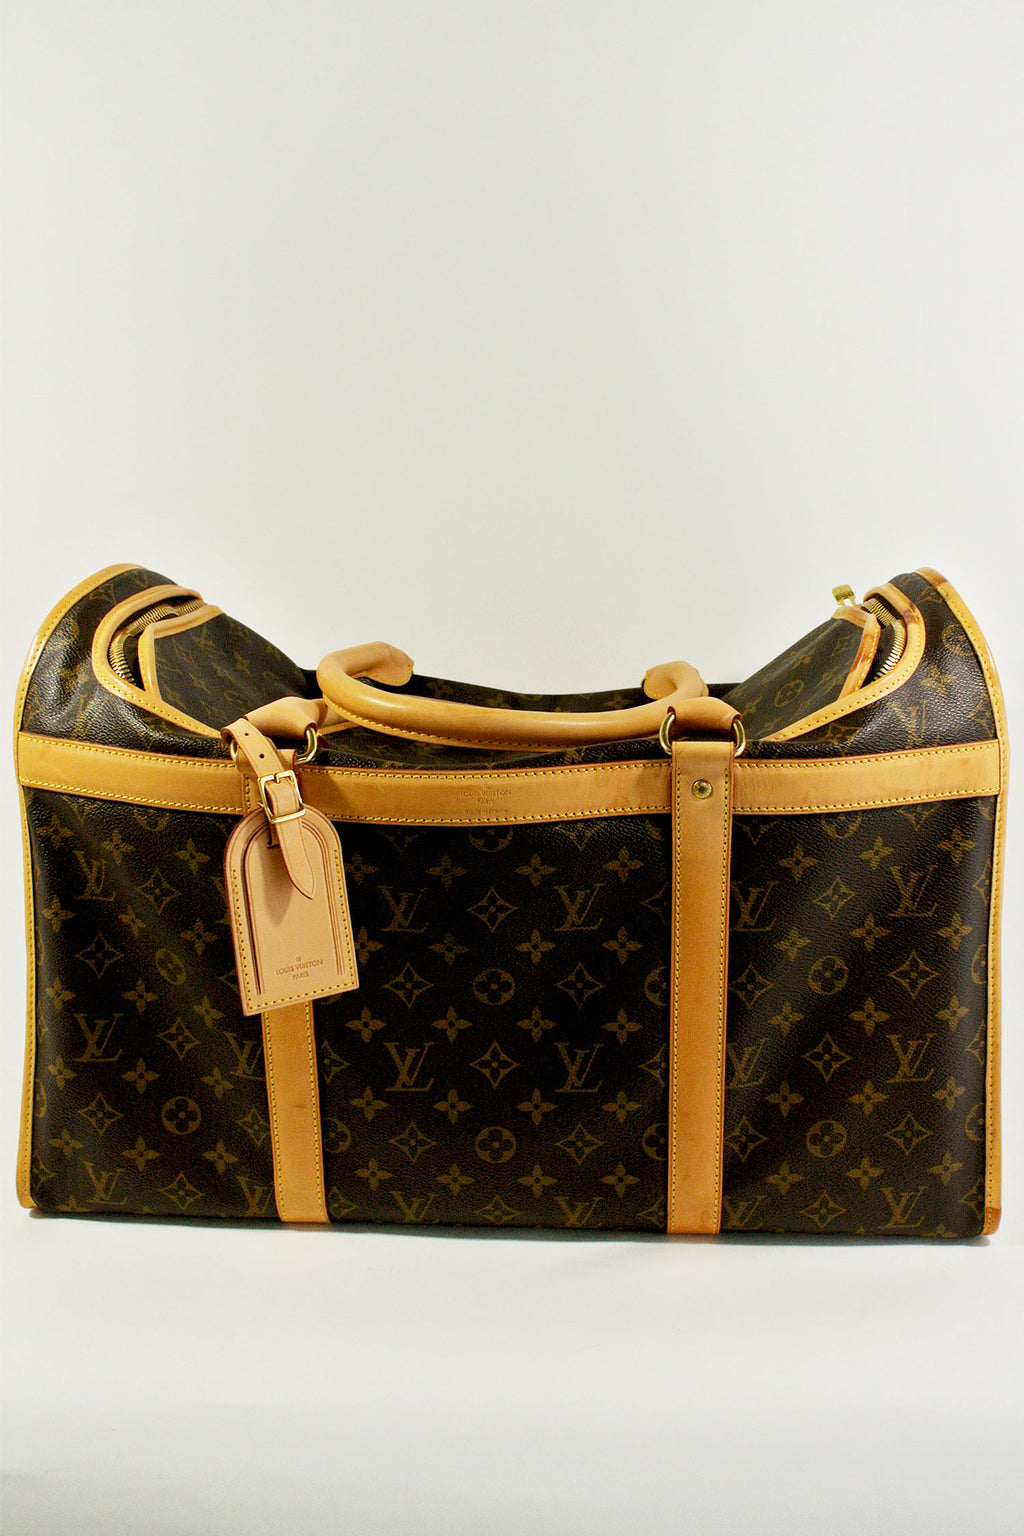 Louis Vuitton Monogram Dog Carrier 50